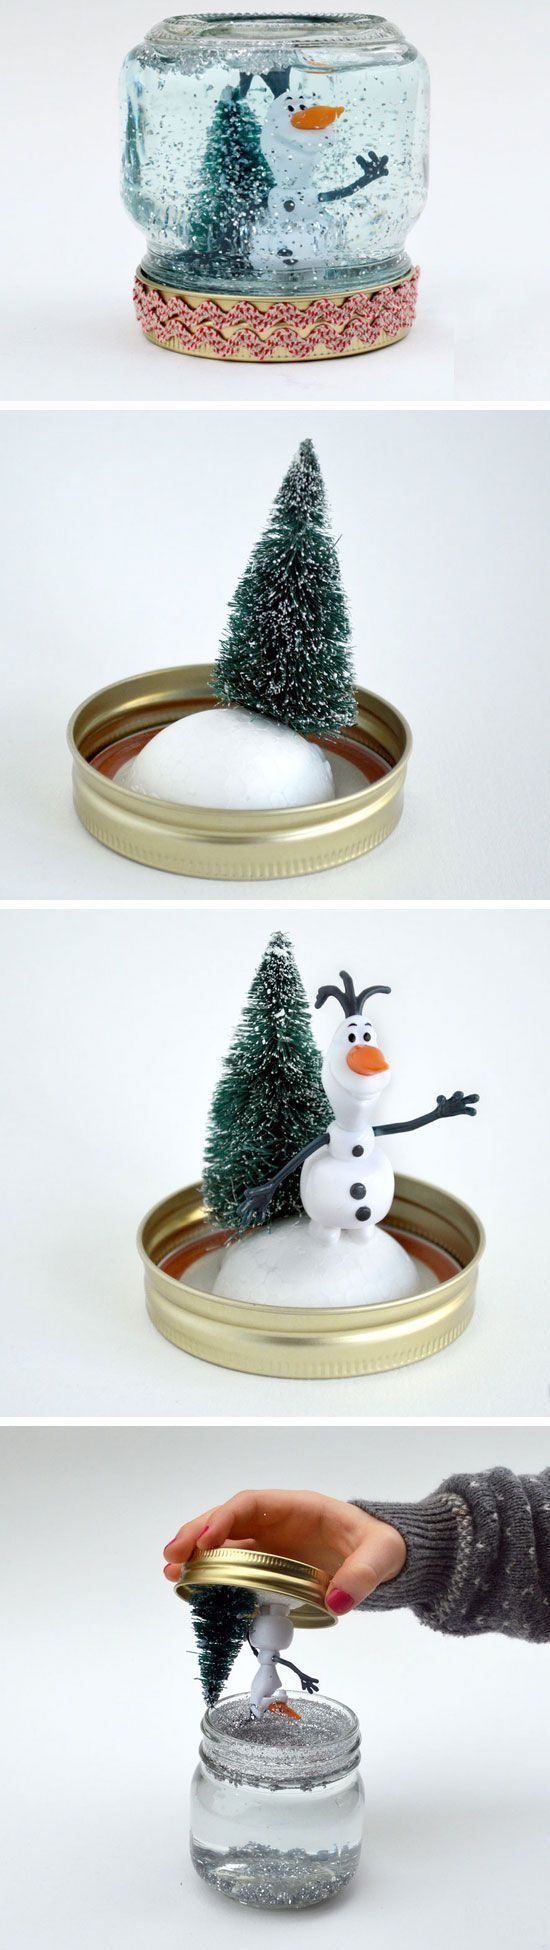 How to Make A Snow Globe | DIY Christmas Crafts for Kids to Make More: